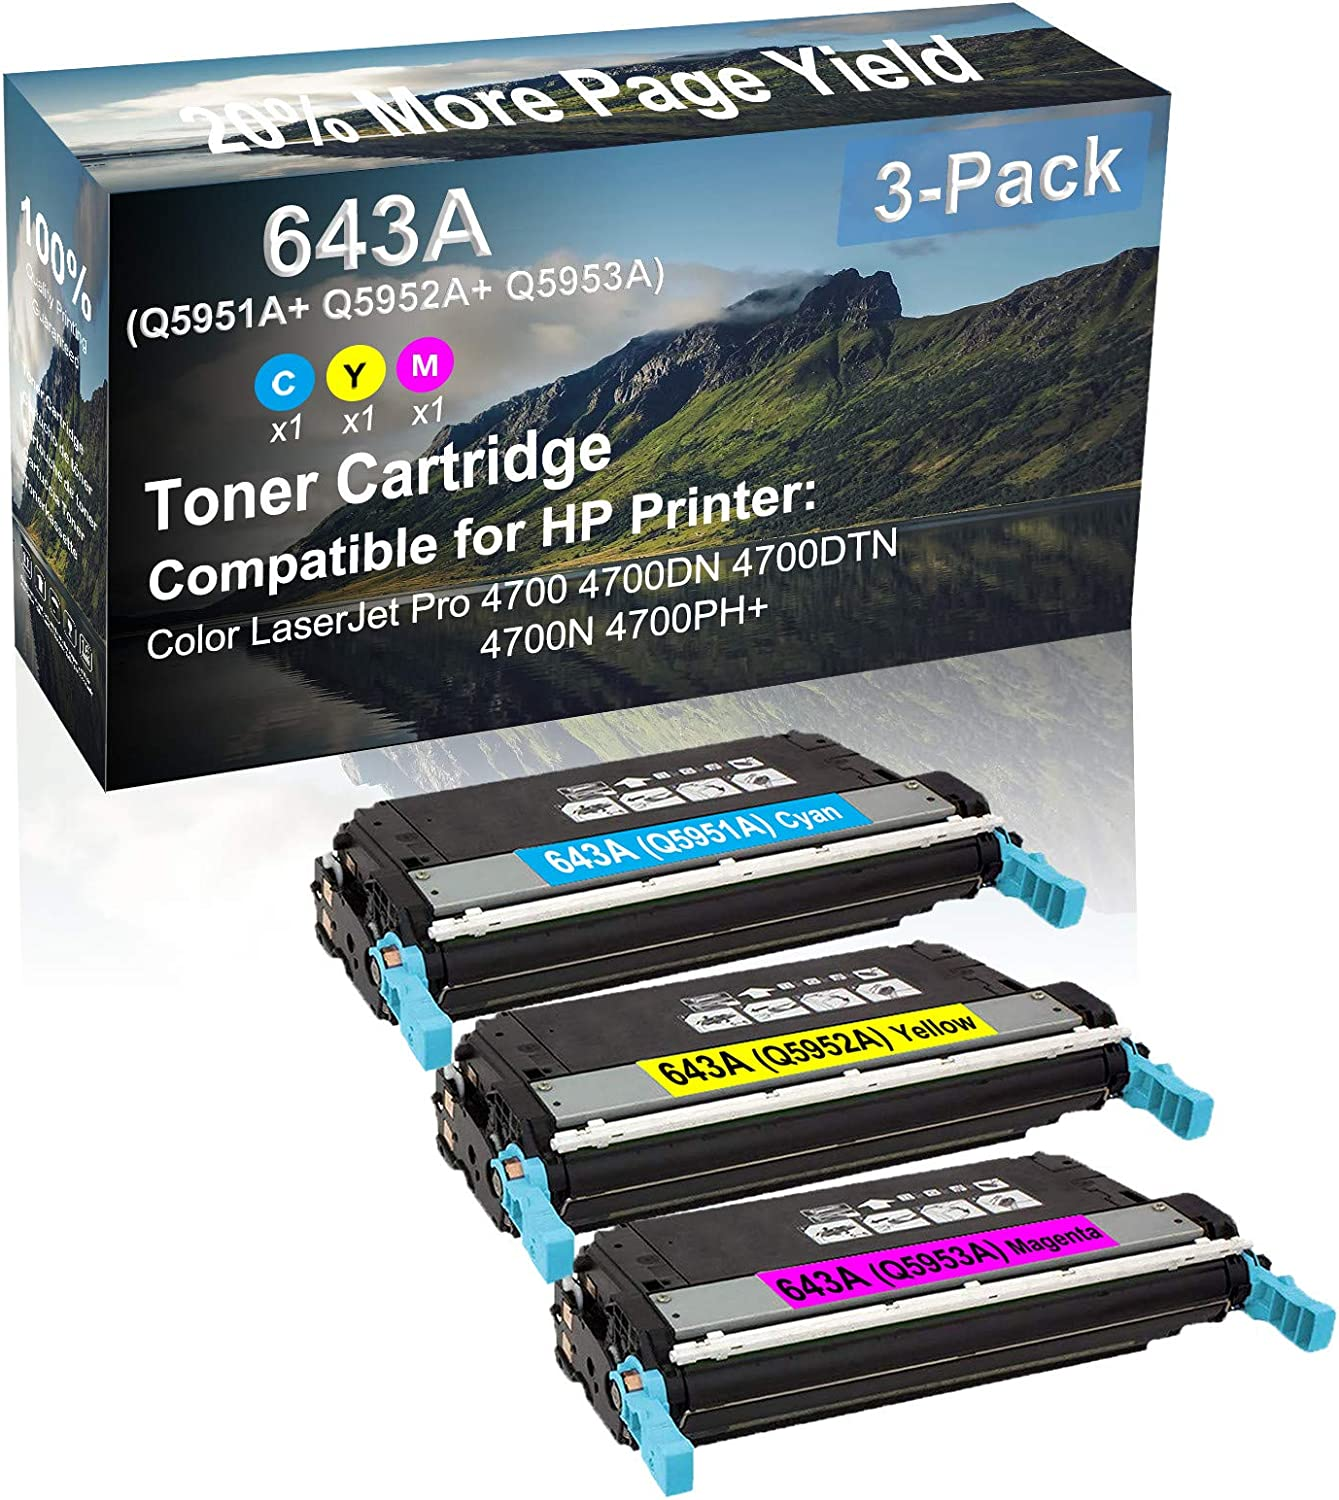 3-Pack (C+Y+M) Compatible 4700, 4700DN, 4700DTN, 4700N, 4700PH+ Printer Toner Cartridge High Capacity Replacement for HP (Q5951A+ Q5952A+ Q5953A) 643A Toner Cartridge